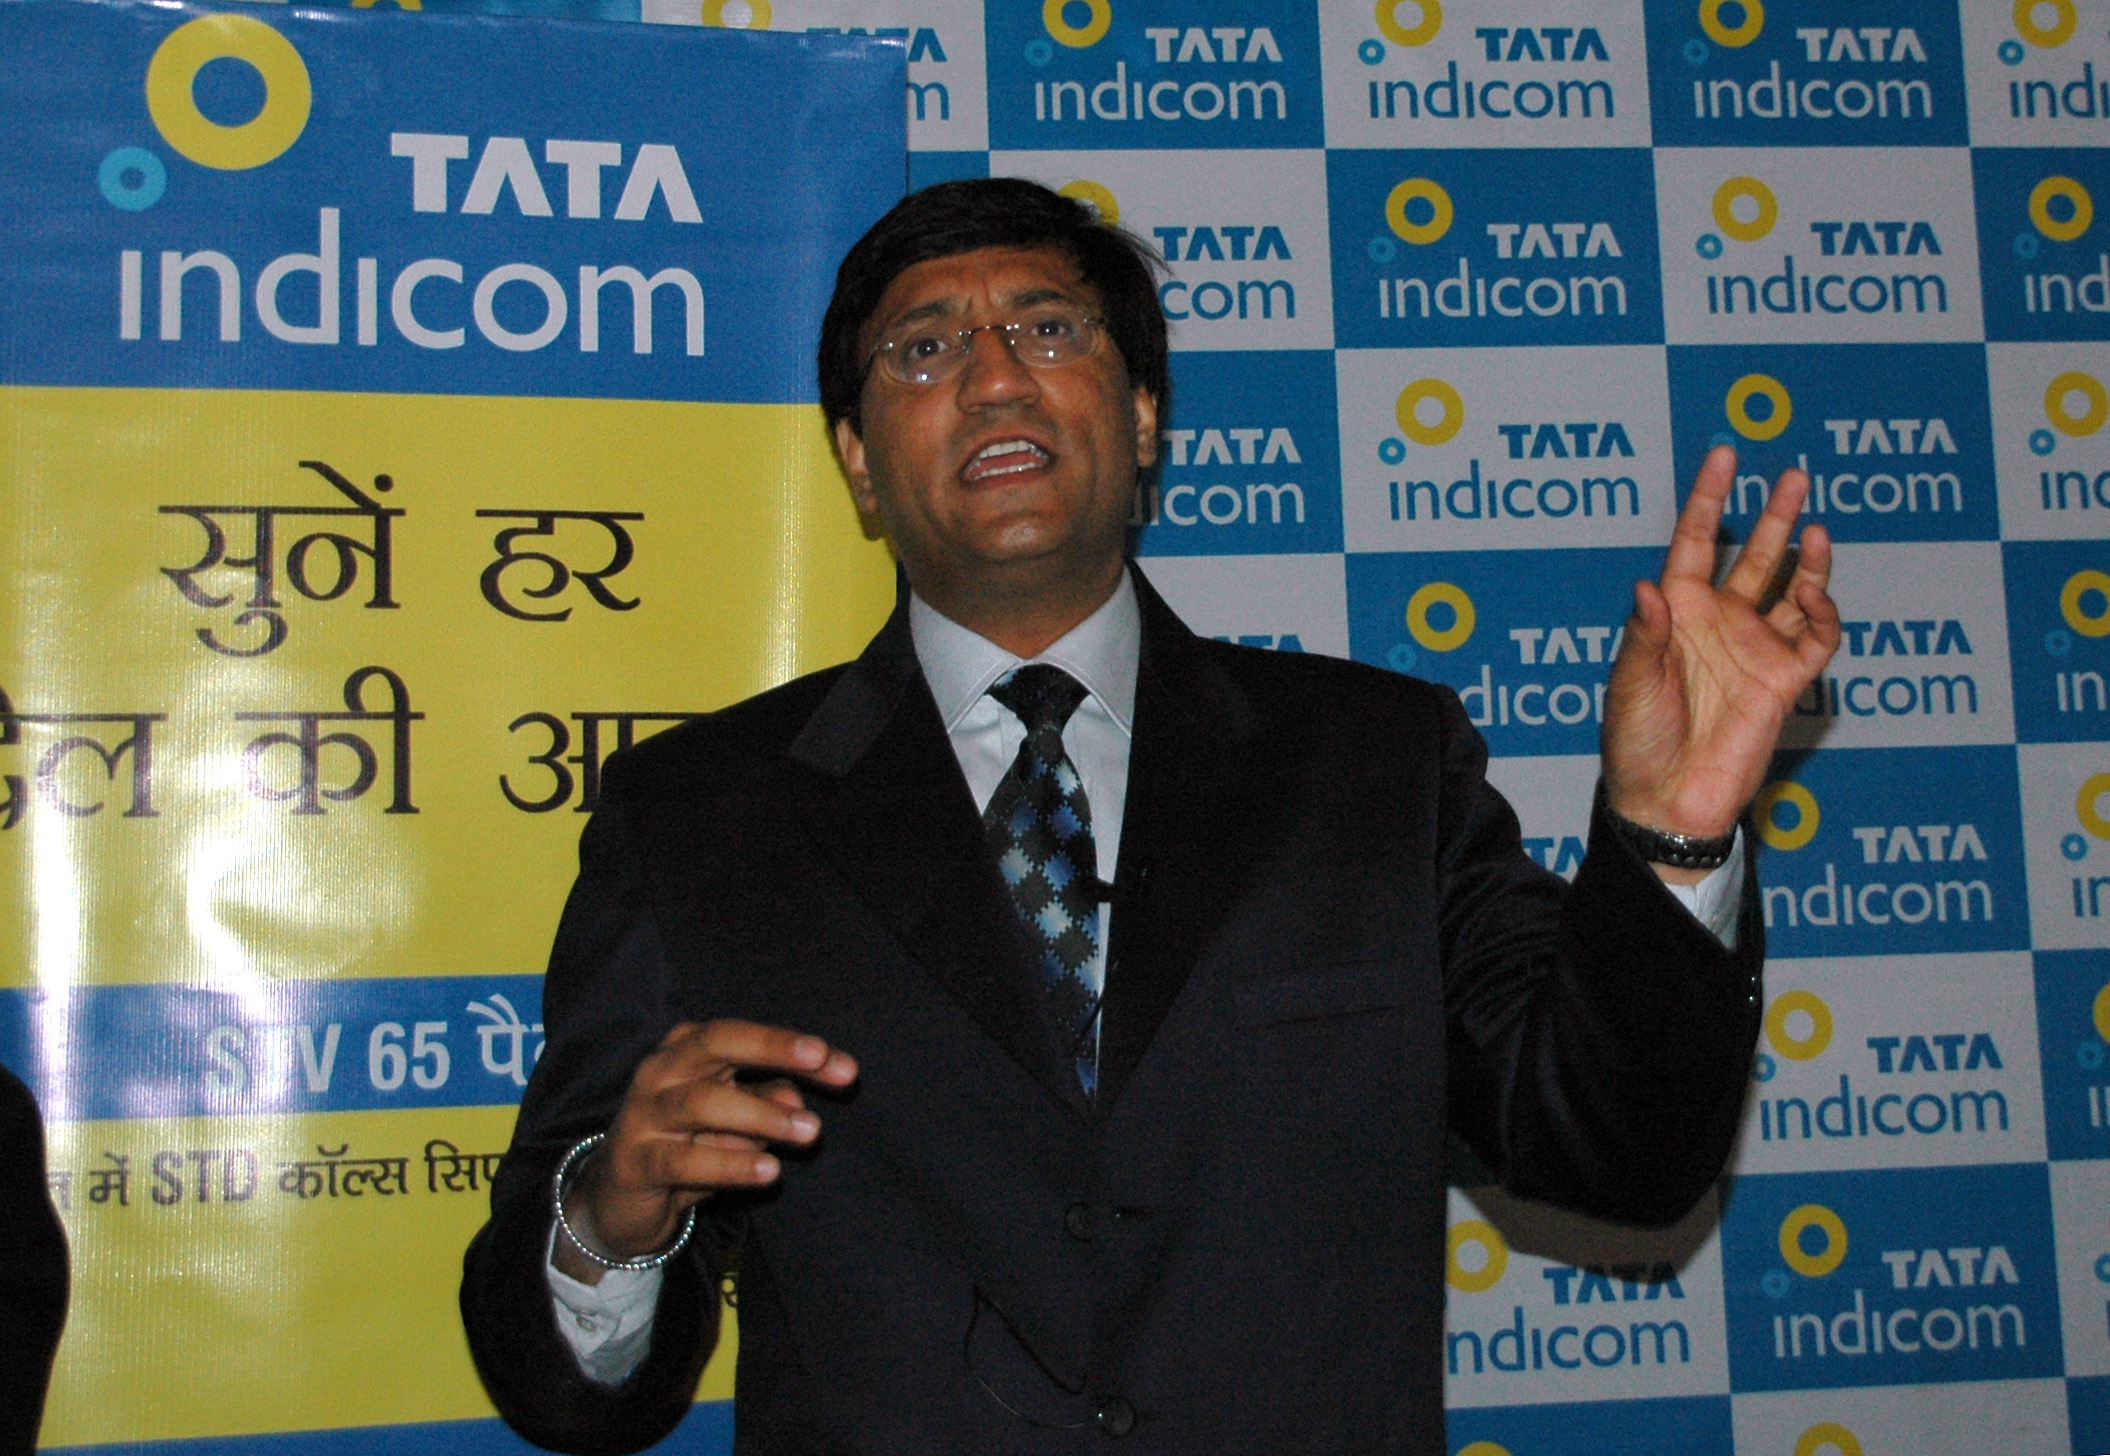 TPS Walia, Chief Operating Officer, Tata Indicom during conference in Shimla on Wednesday.  Photo By:Amit Kanwar